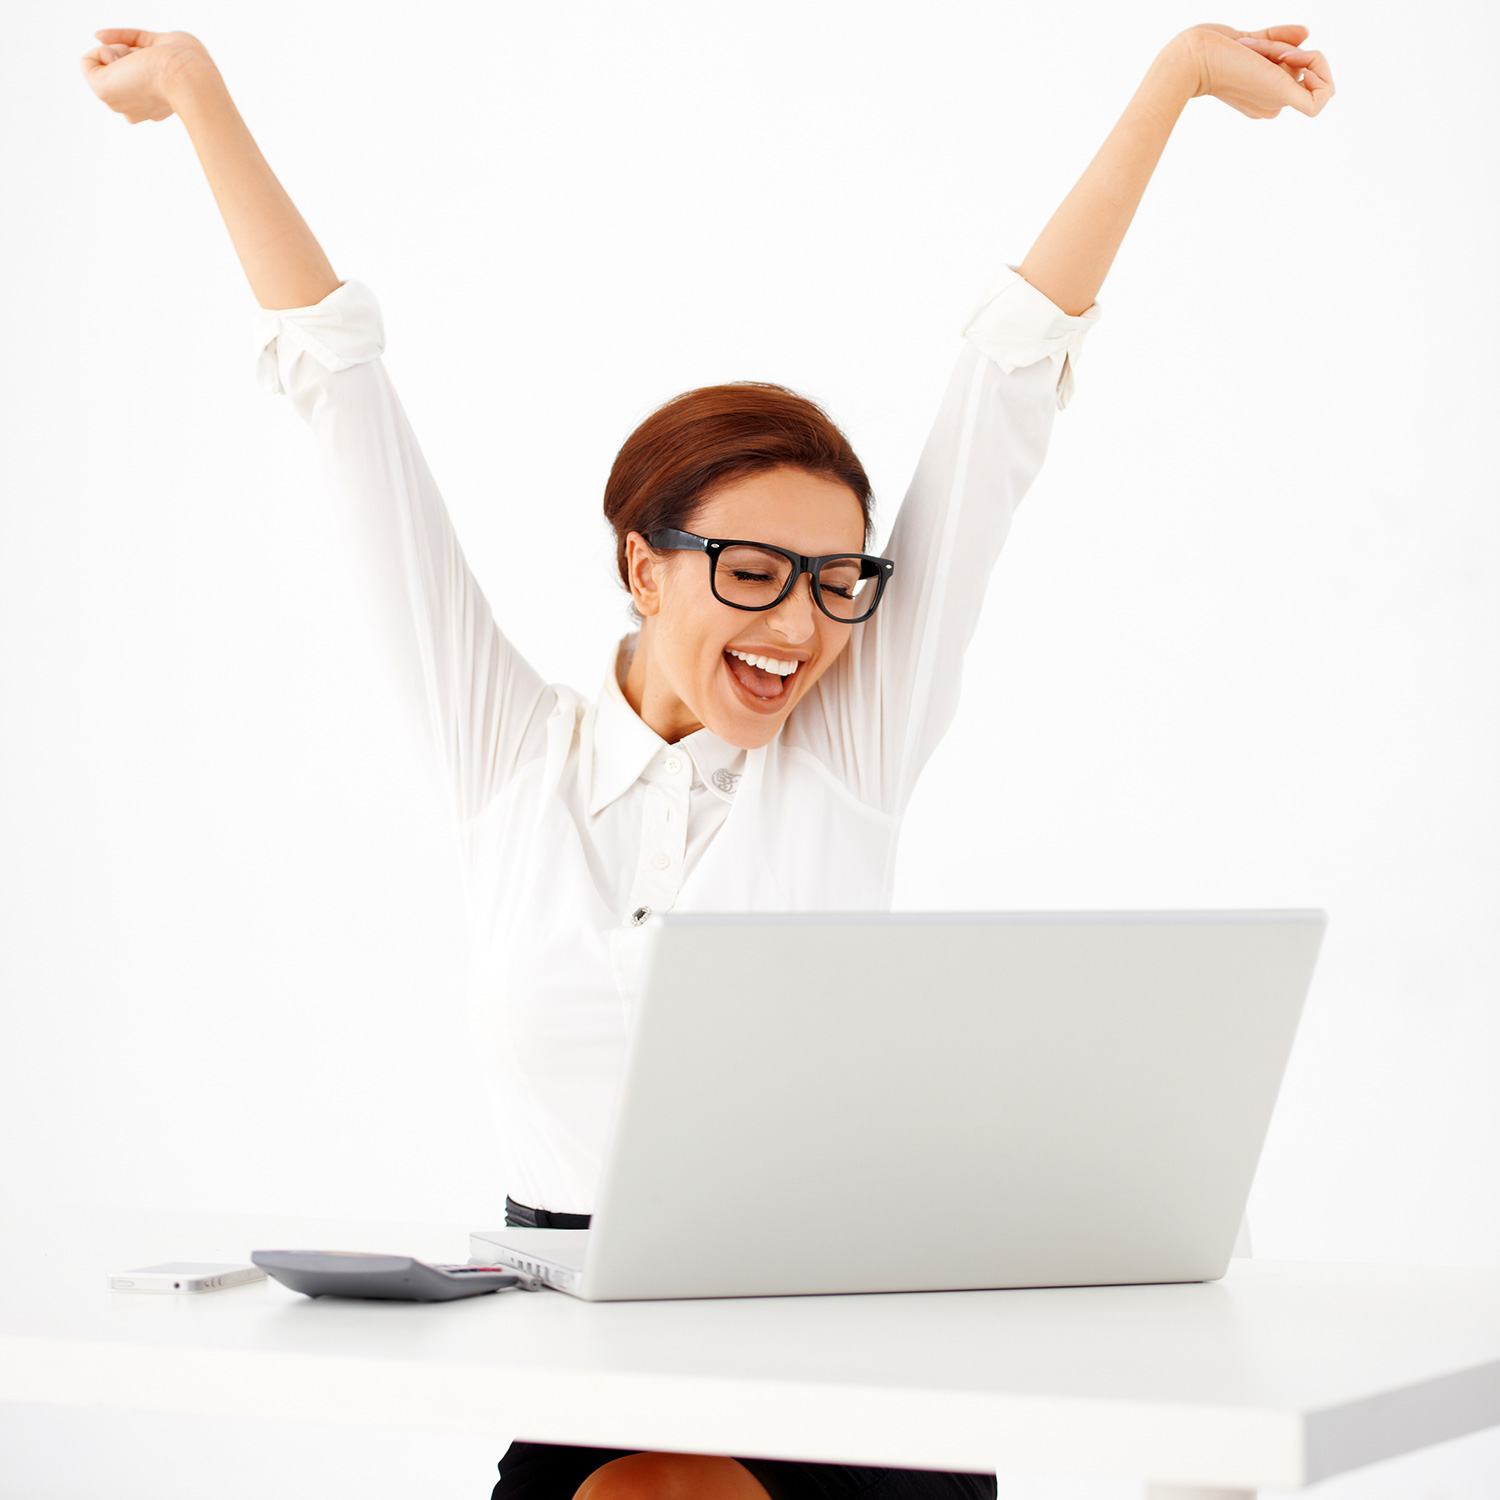 25 little things that make you feel happy at work | Hppy  |Happy Working